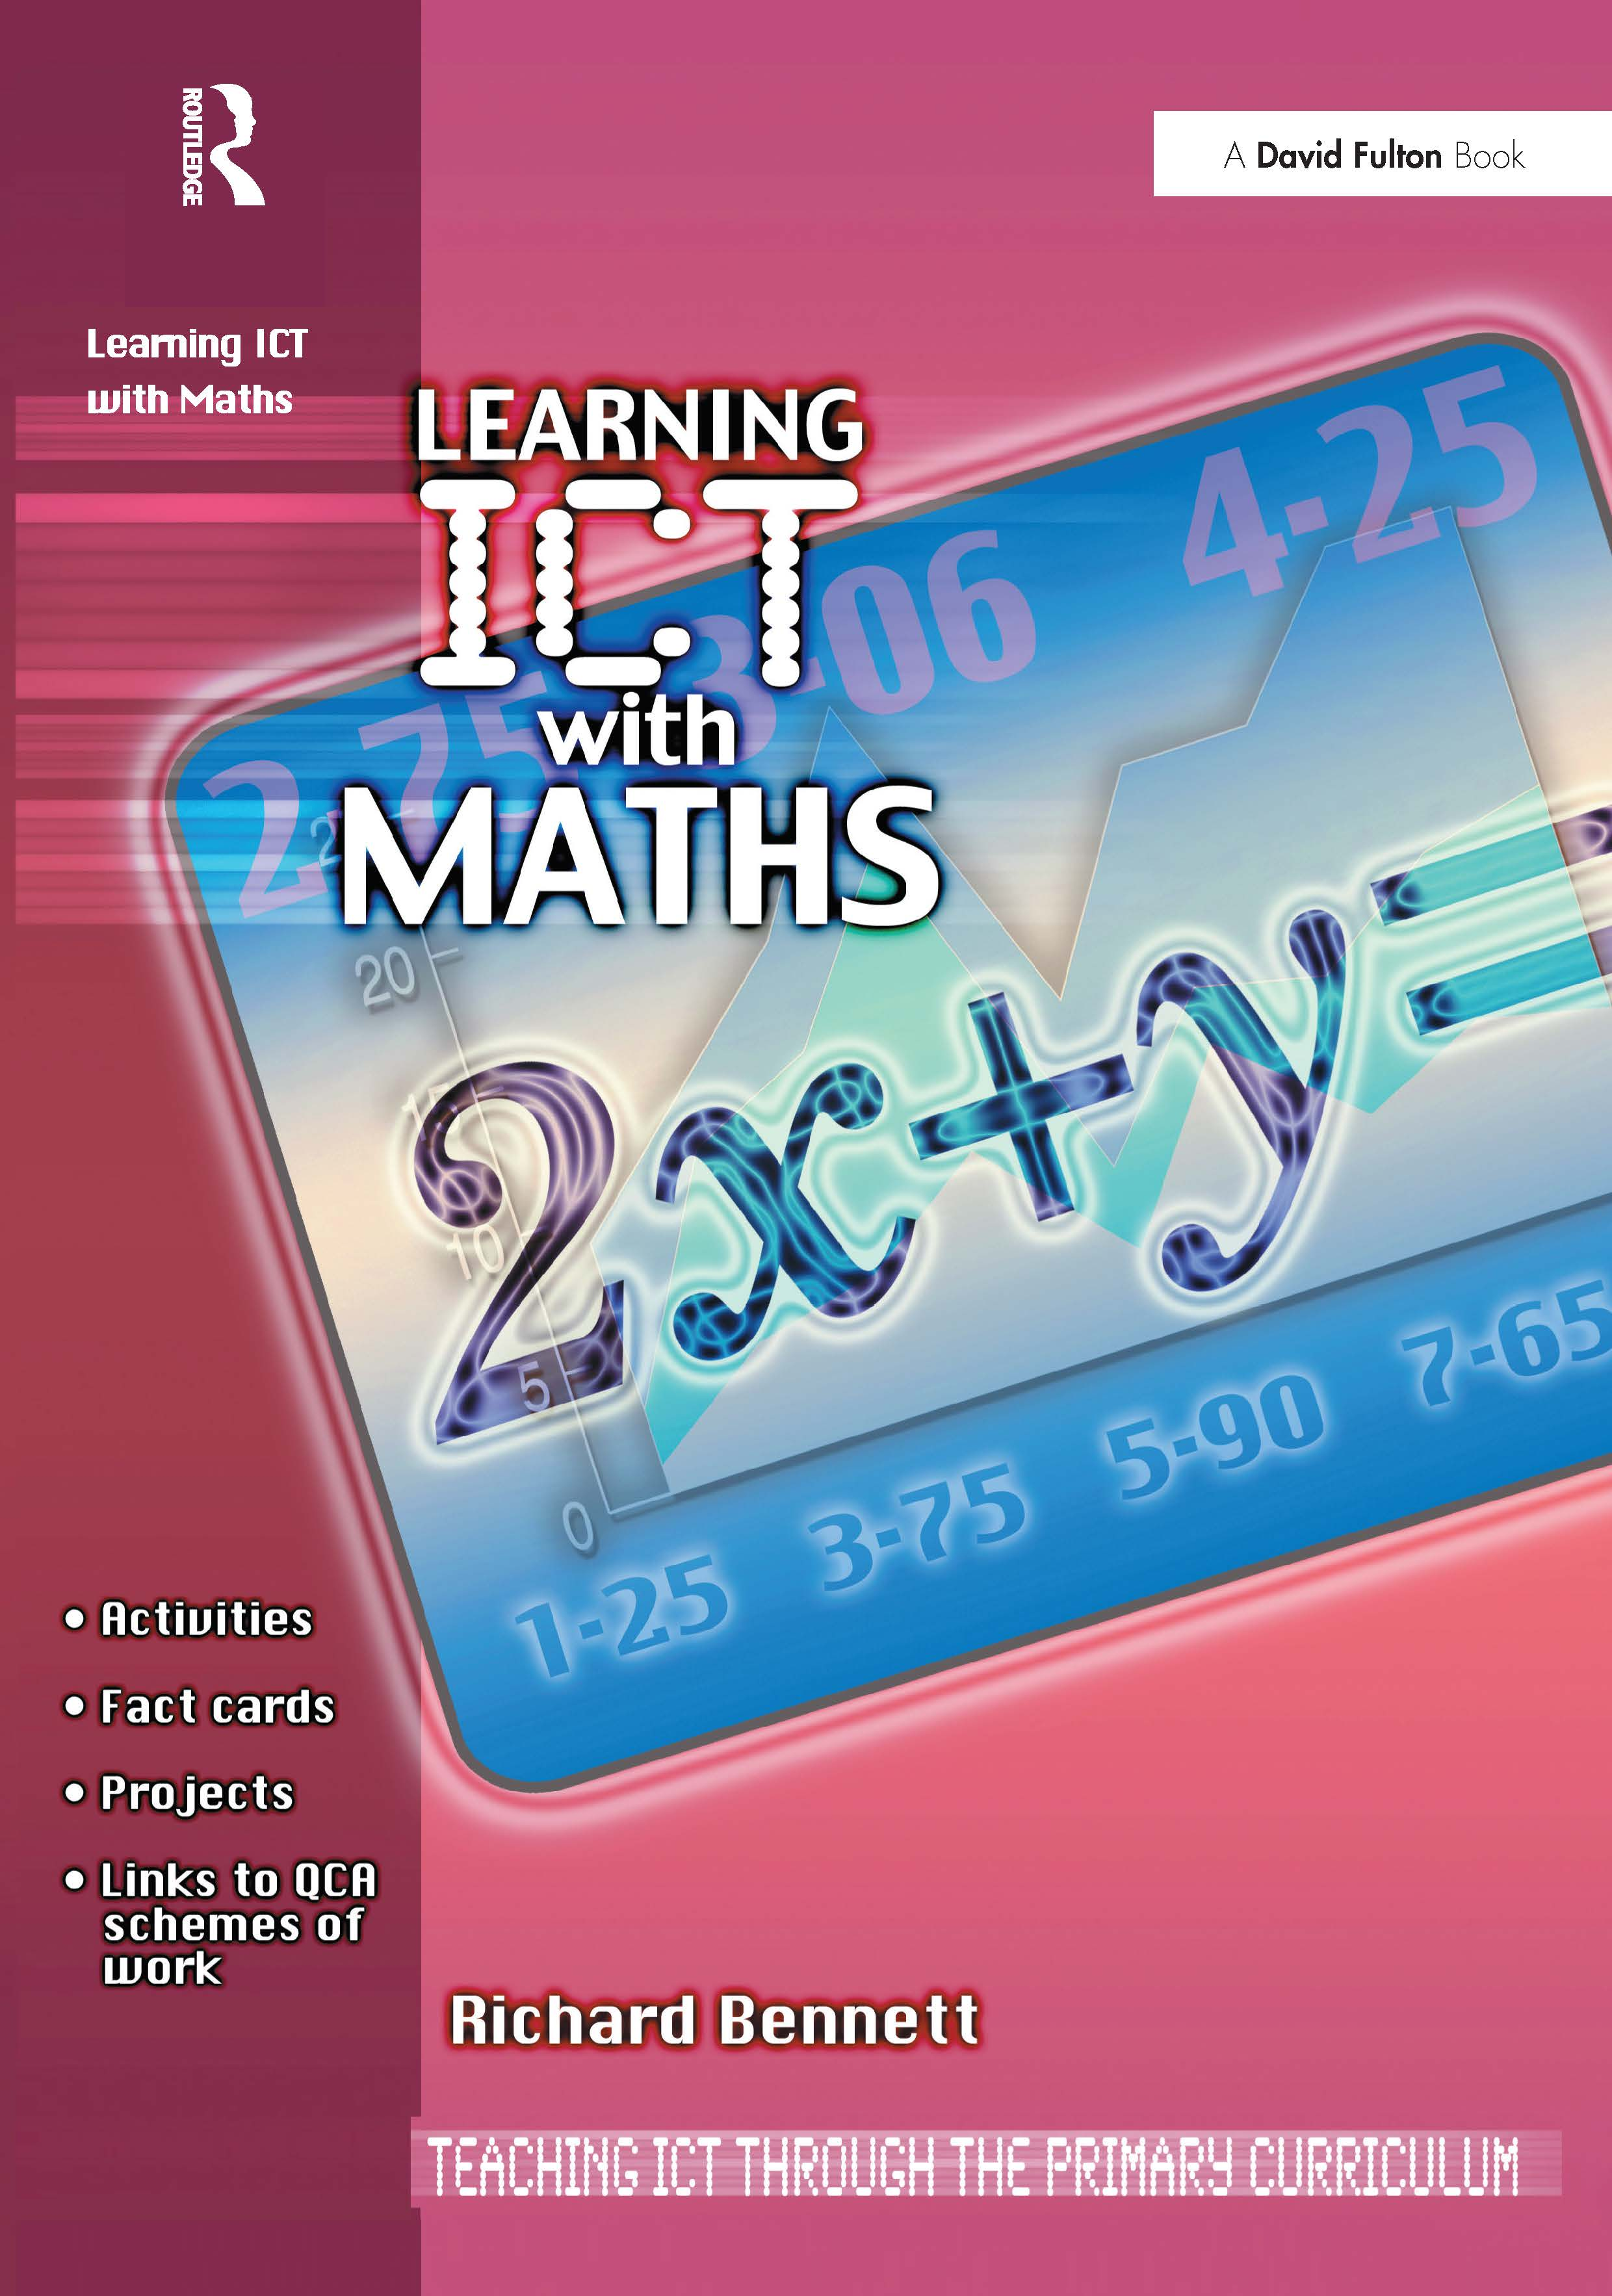 Learning ICT with Maths book cover